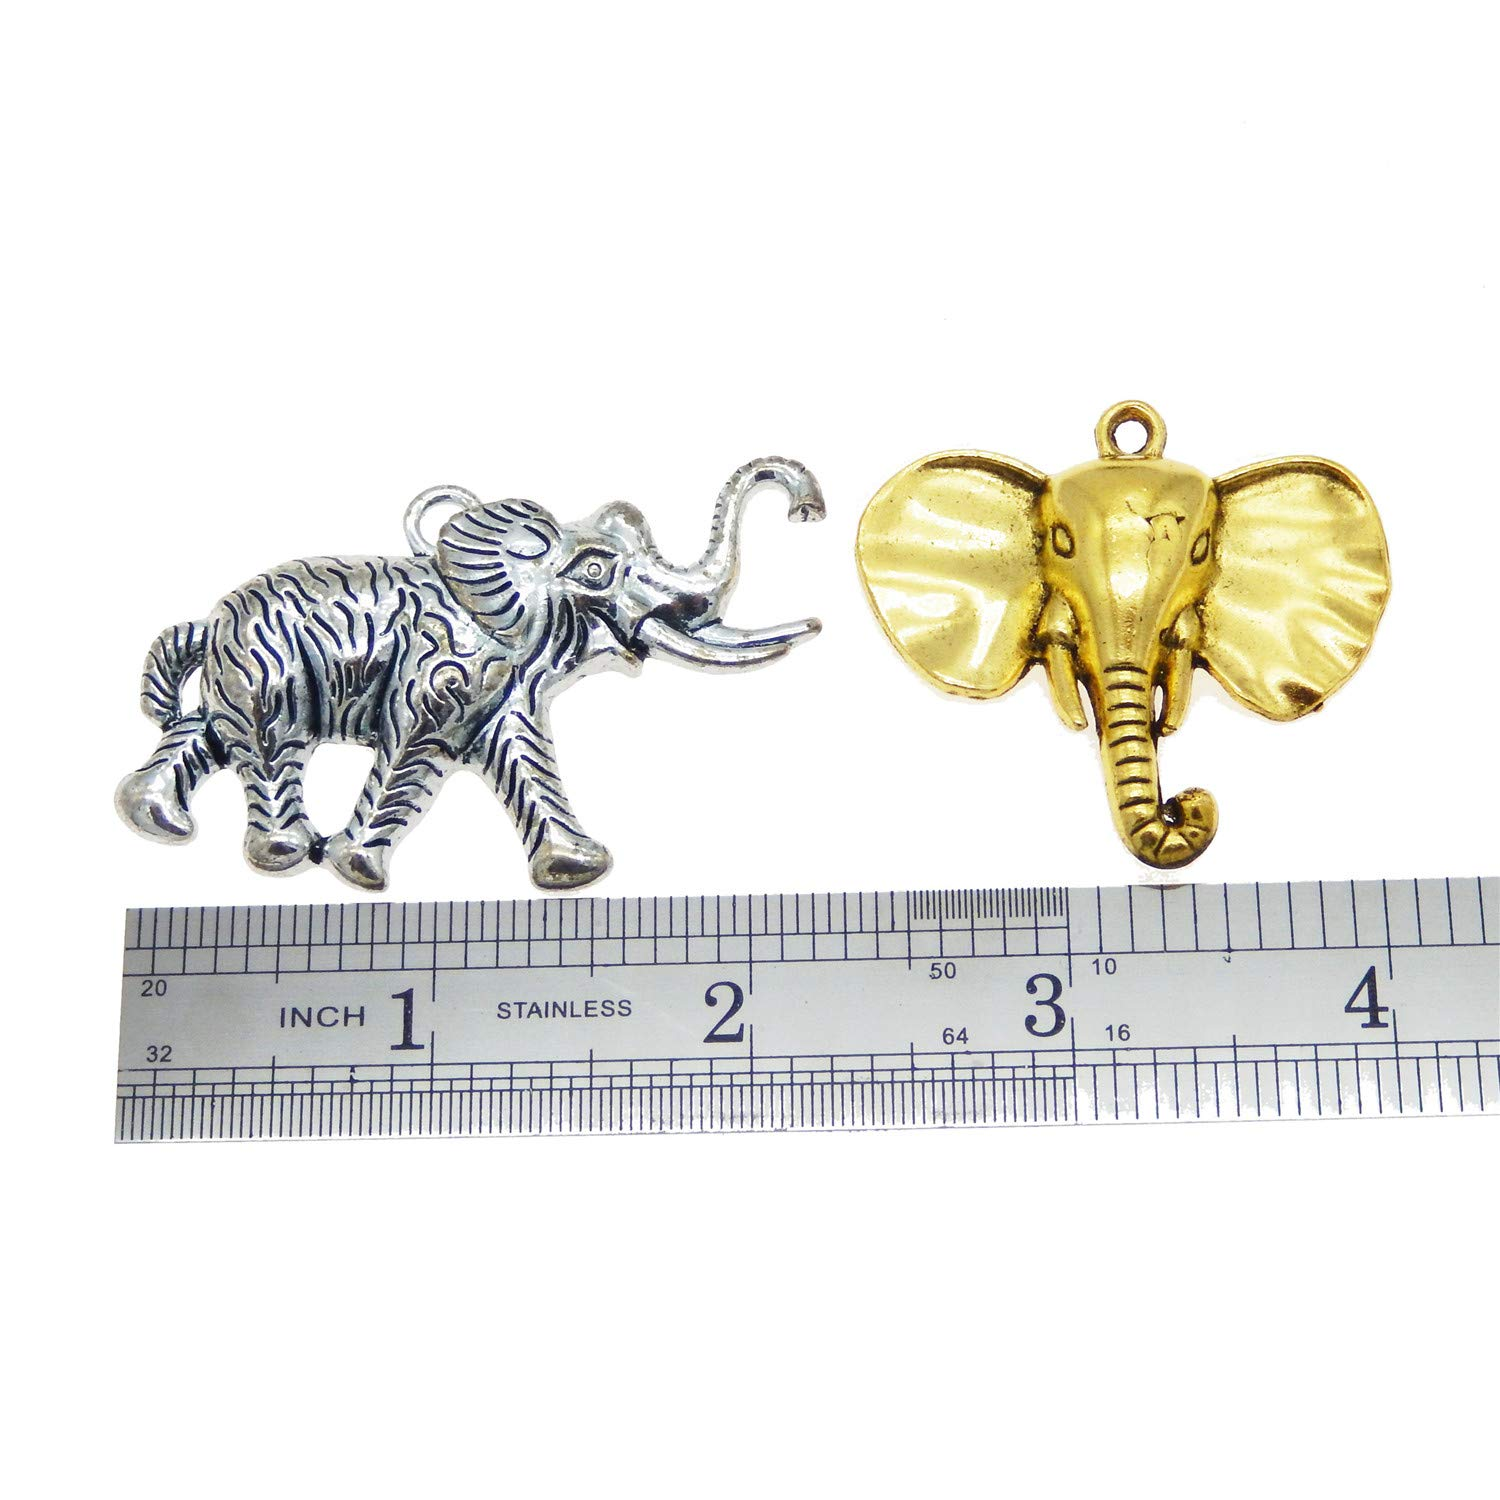 GraceAngie Wholesale 20 piece//pack Mixed Elephant Charms Pendants for Necklace Bracelets Jewelry Making DIY Handmade